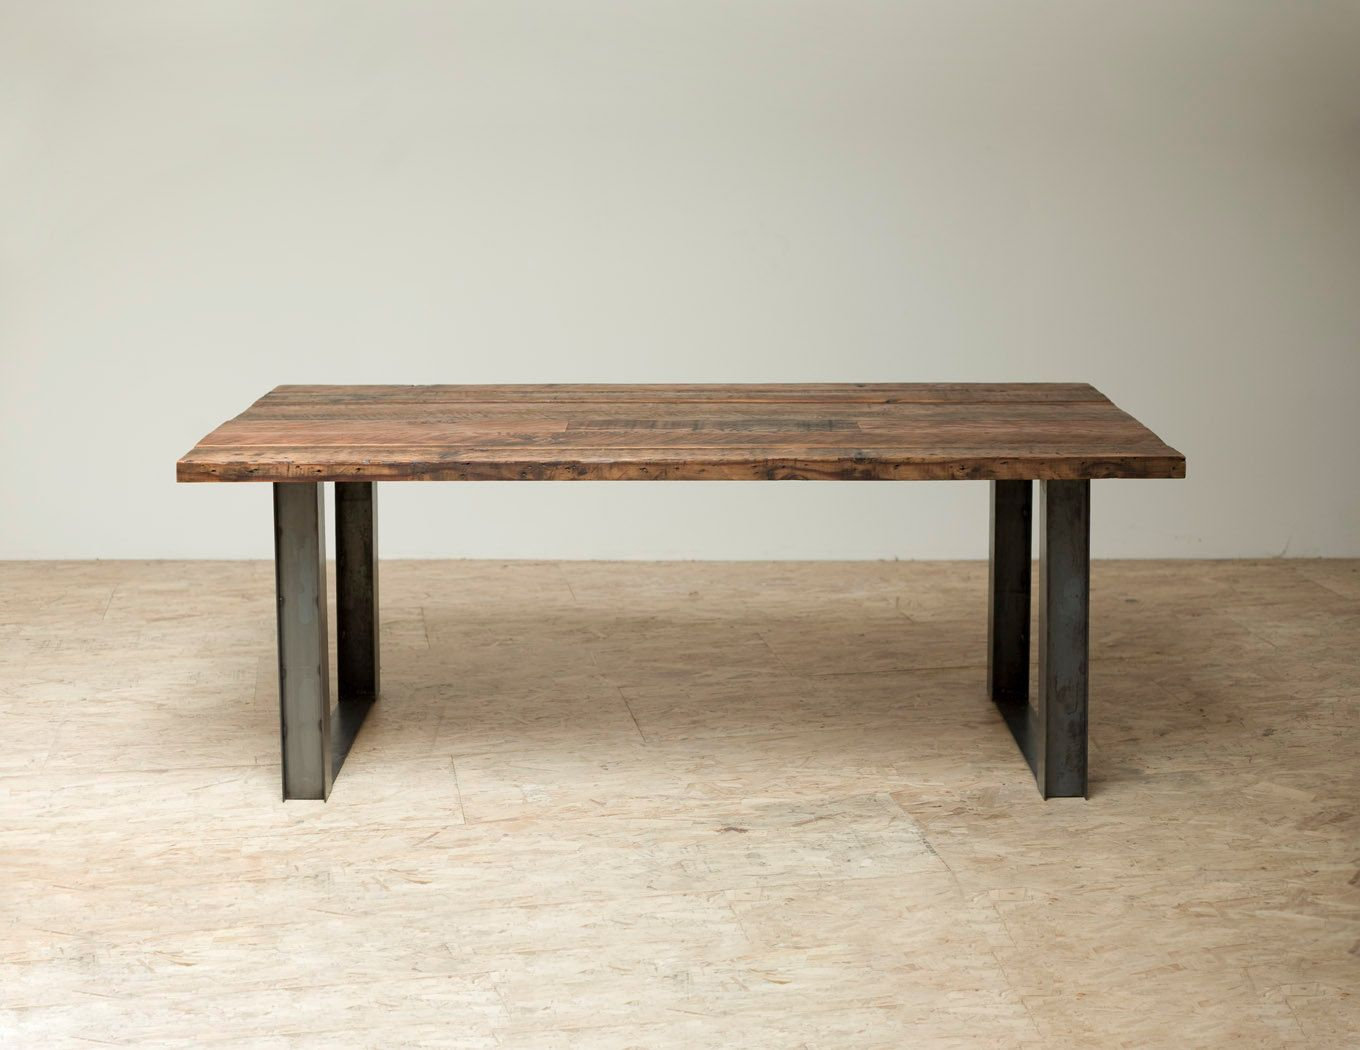 Mount Whitney Table  Reclaimed Architectural Douglas fir   Reclaimed steel   Handmade by Blake Avenue. Mount Whitney Table  Reclaimed Architectural Douglas fir